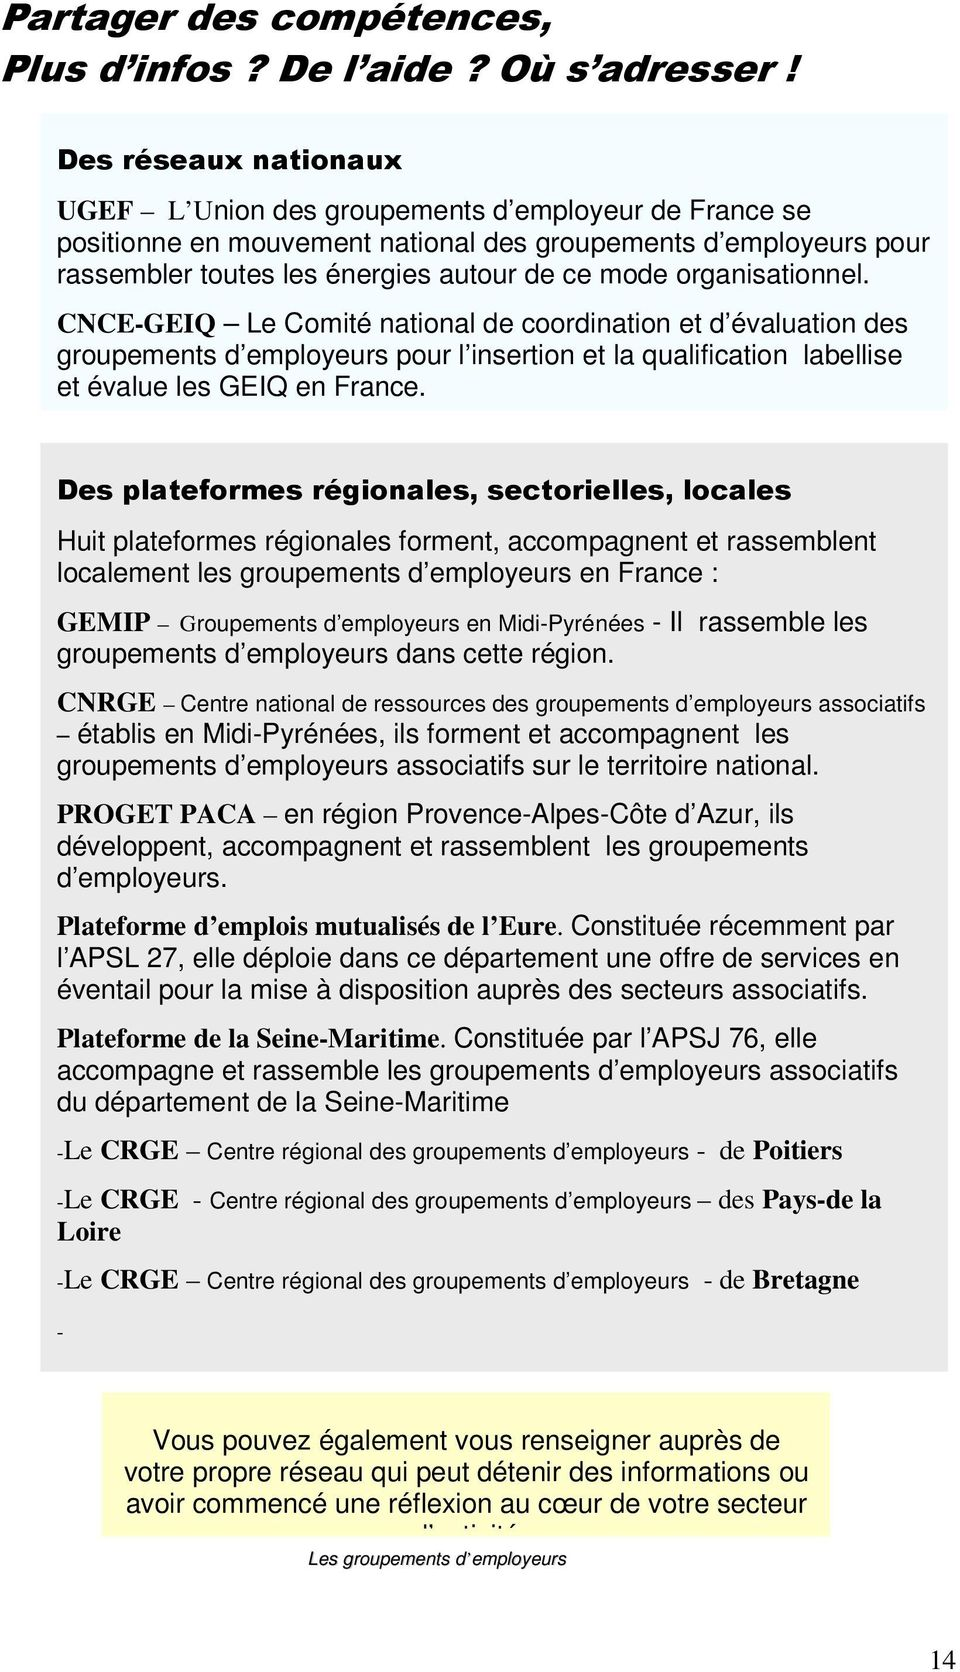 organisationnel. CNCE-GEIQ Le Comité national de coordination et d évaluation des groupements d employeurs pour l insertion et la qualification labellise et évalue les GEIQ en France.